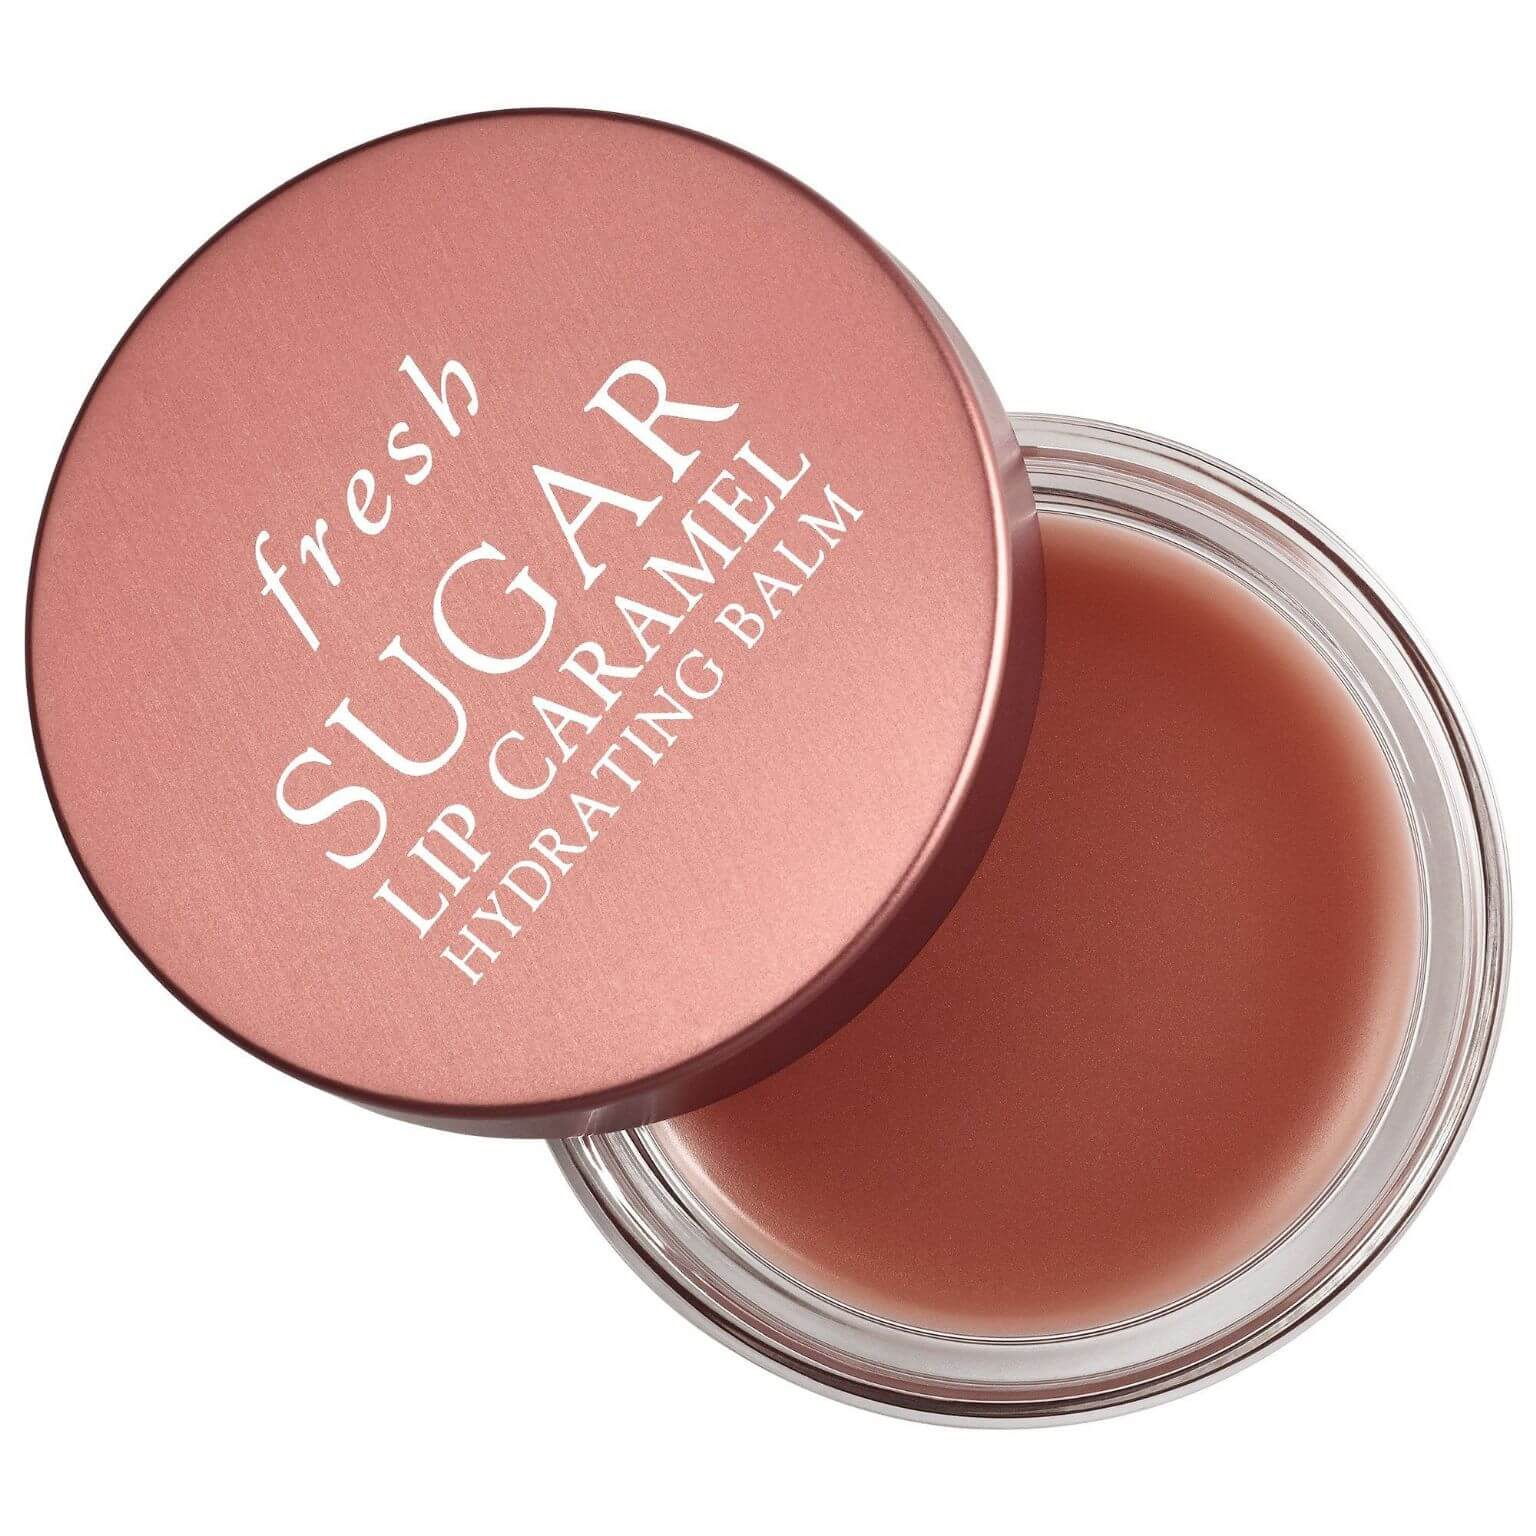 ลิปบาล์ม Fresh Sugar Lip Caramel Hydrating Balm